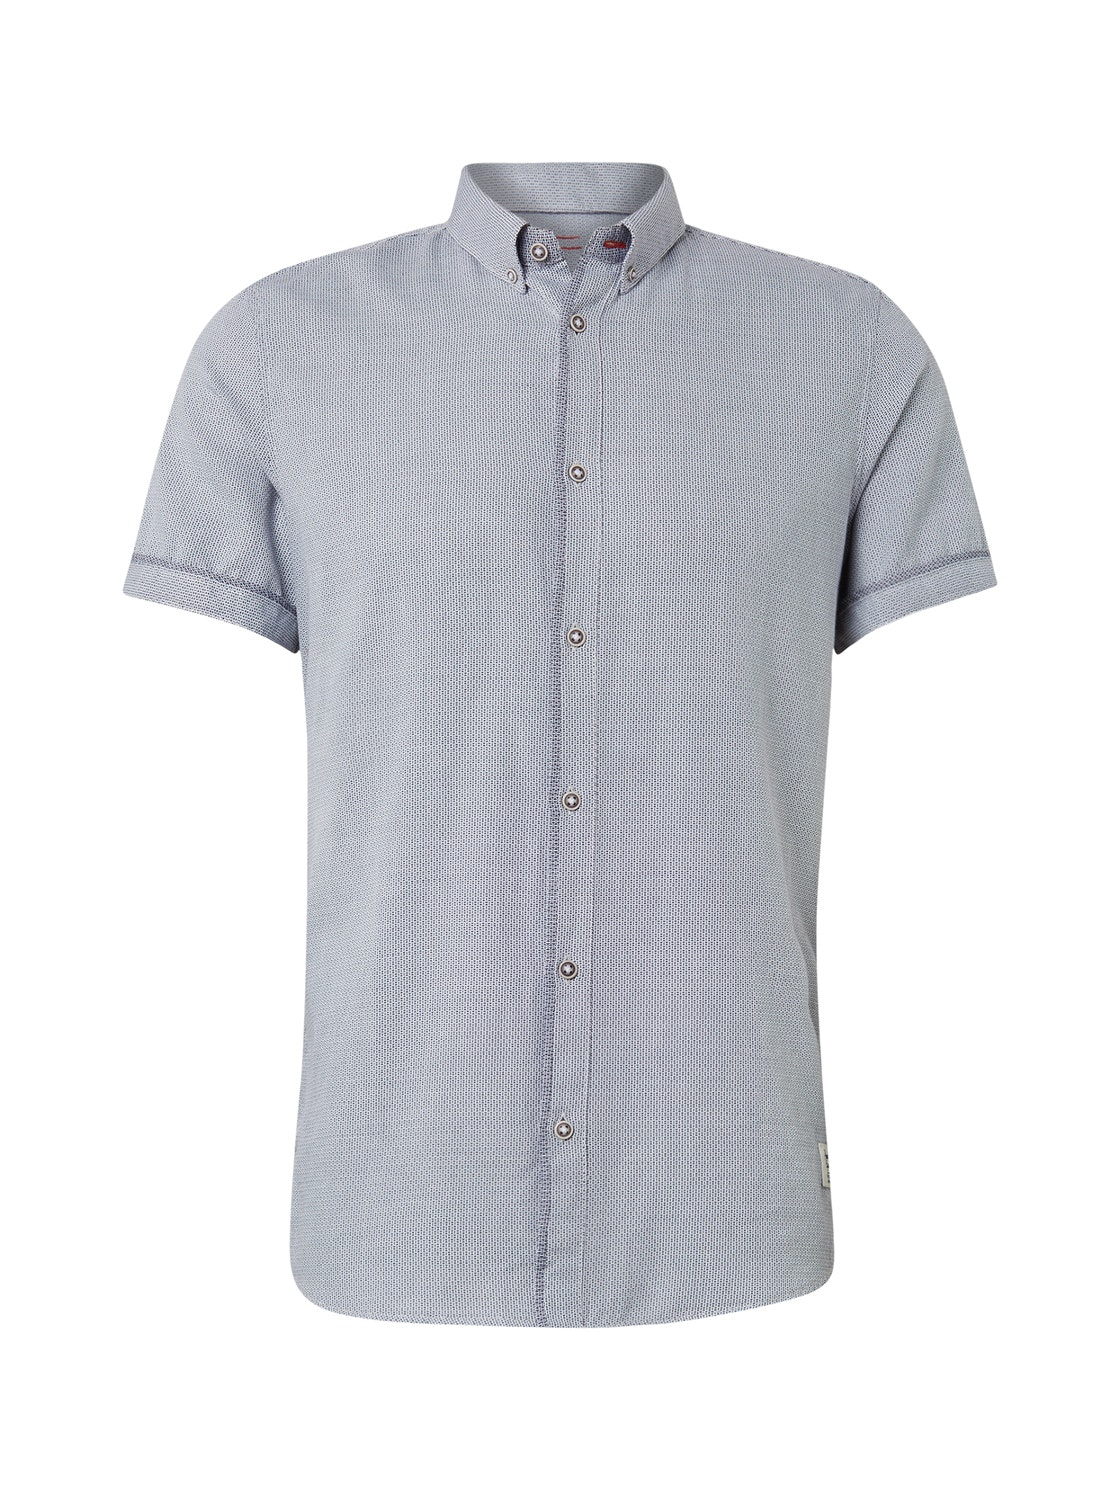 floyd casual structure shirt, white navy structure          Blue